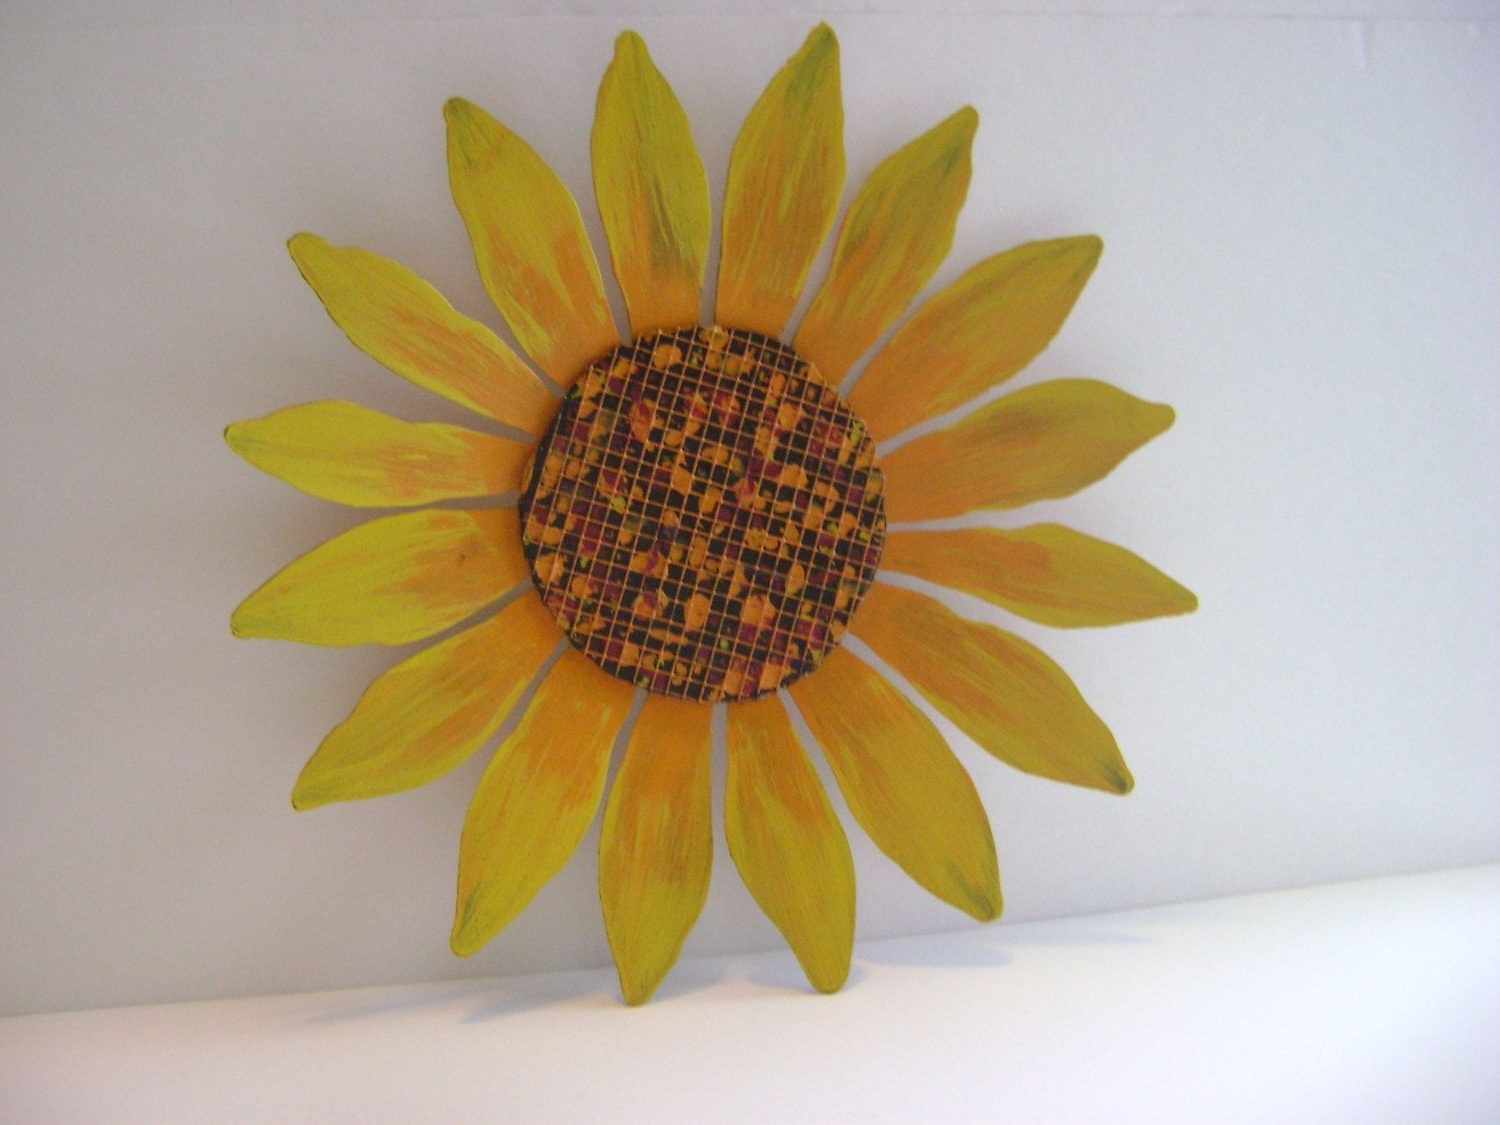 Yellow / Orange Sunflower Wall Art, Sculptured Metal Garden Art Regarding Recent Sunflower Wall Art (View 6 of 15)